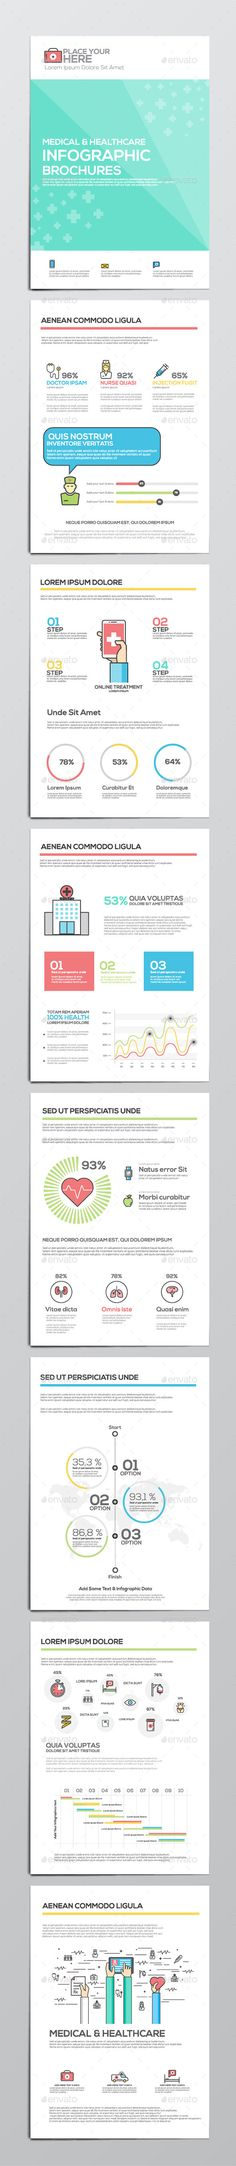 30 best cold flyers images on pinterest flyers health and info